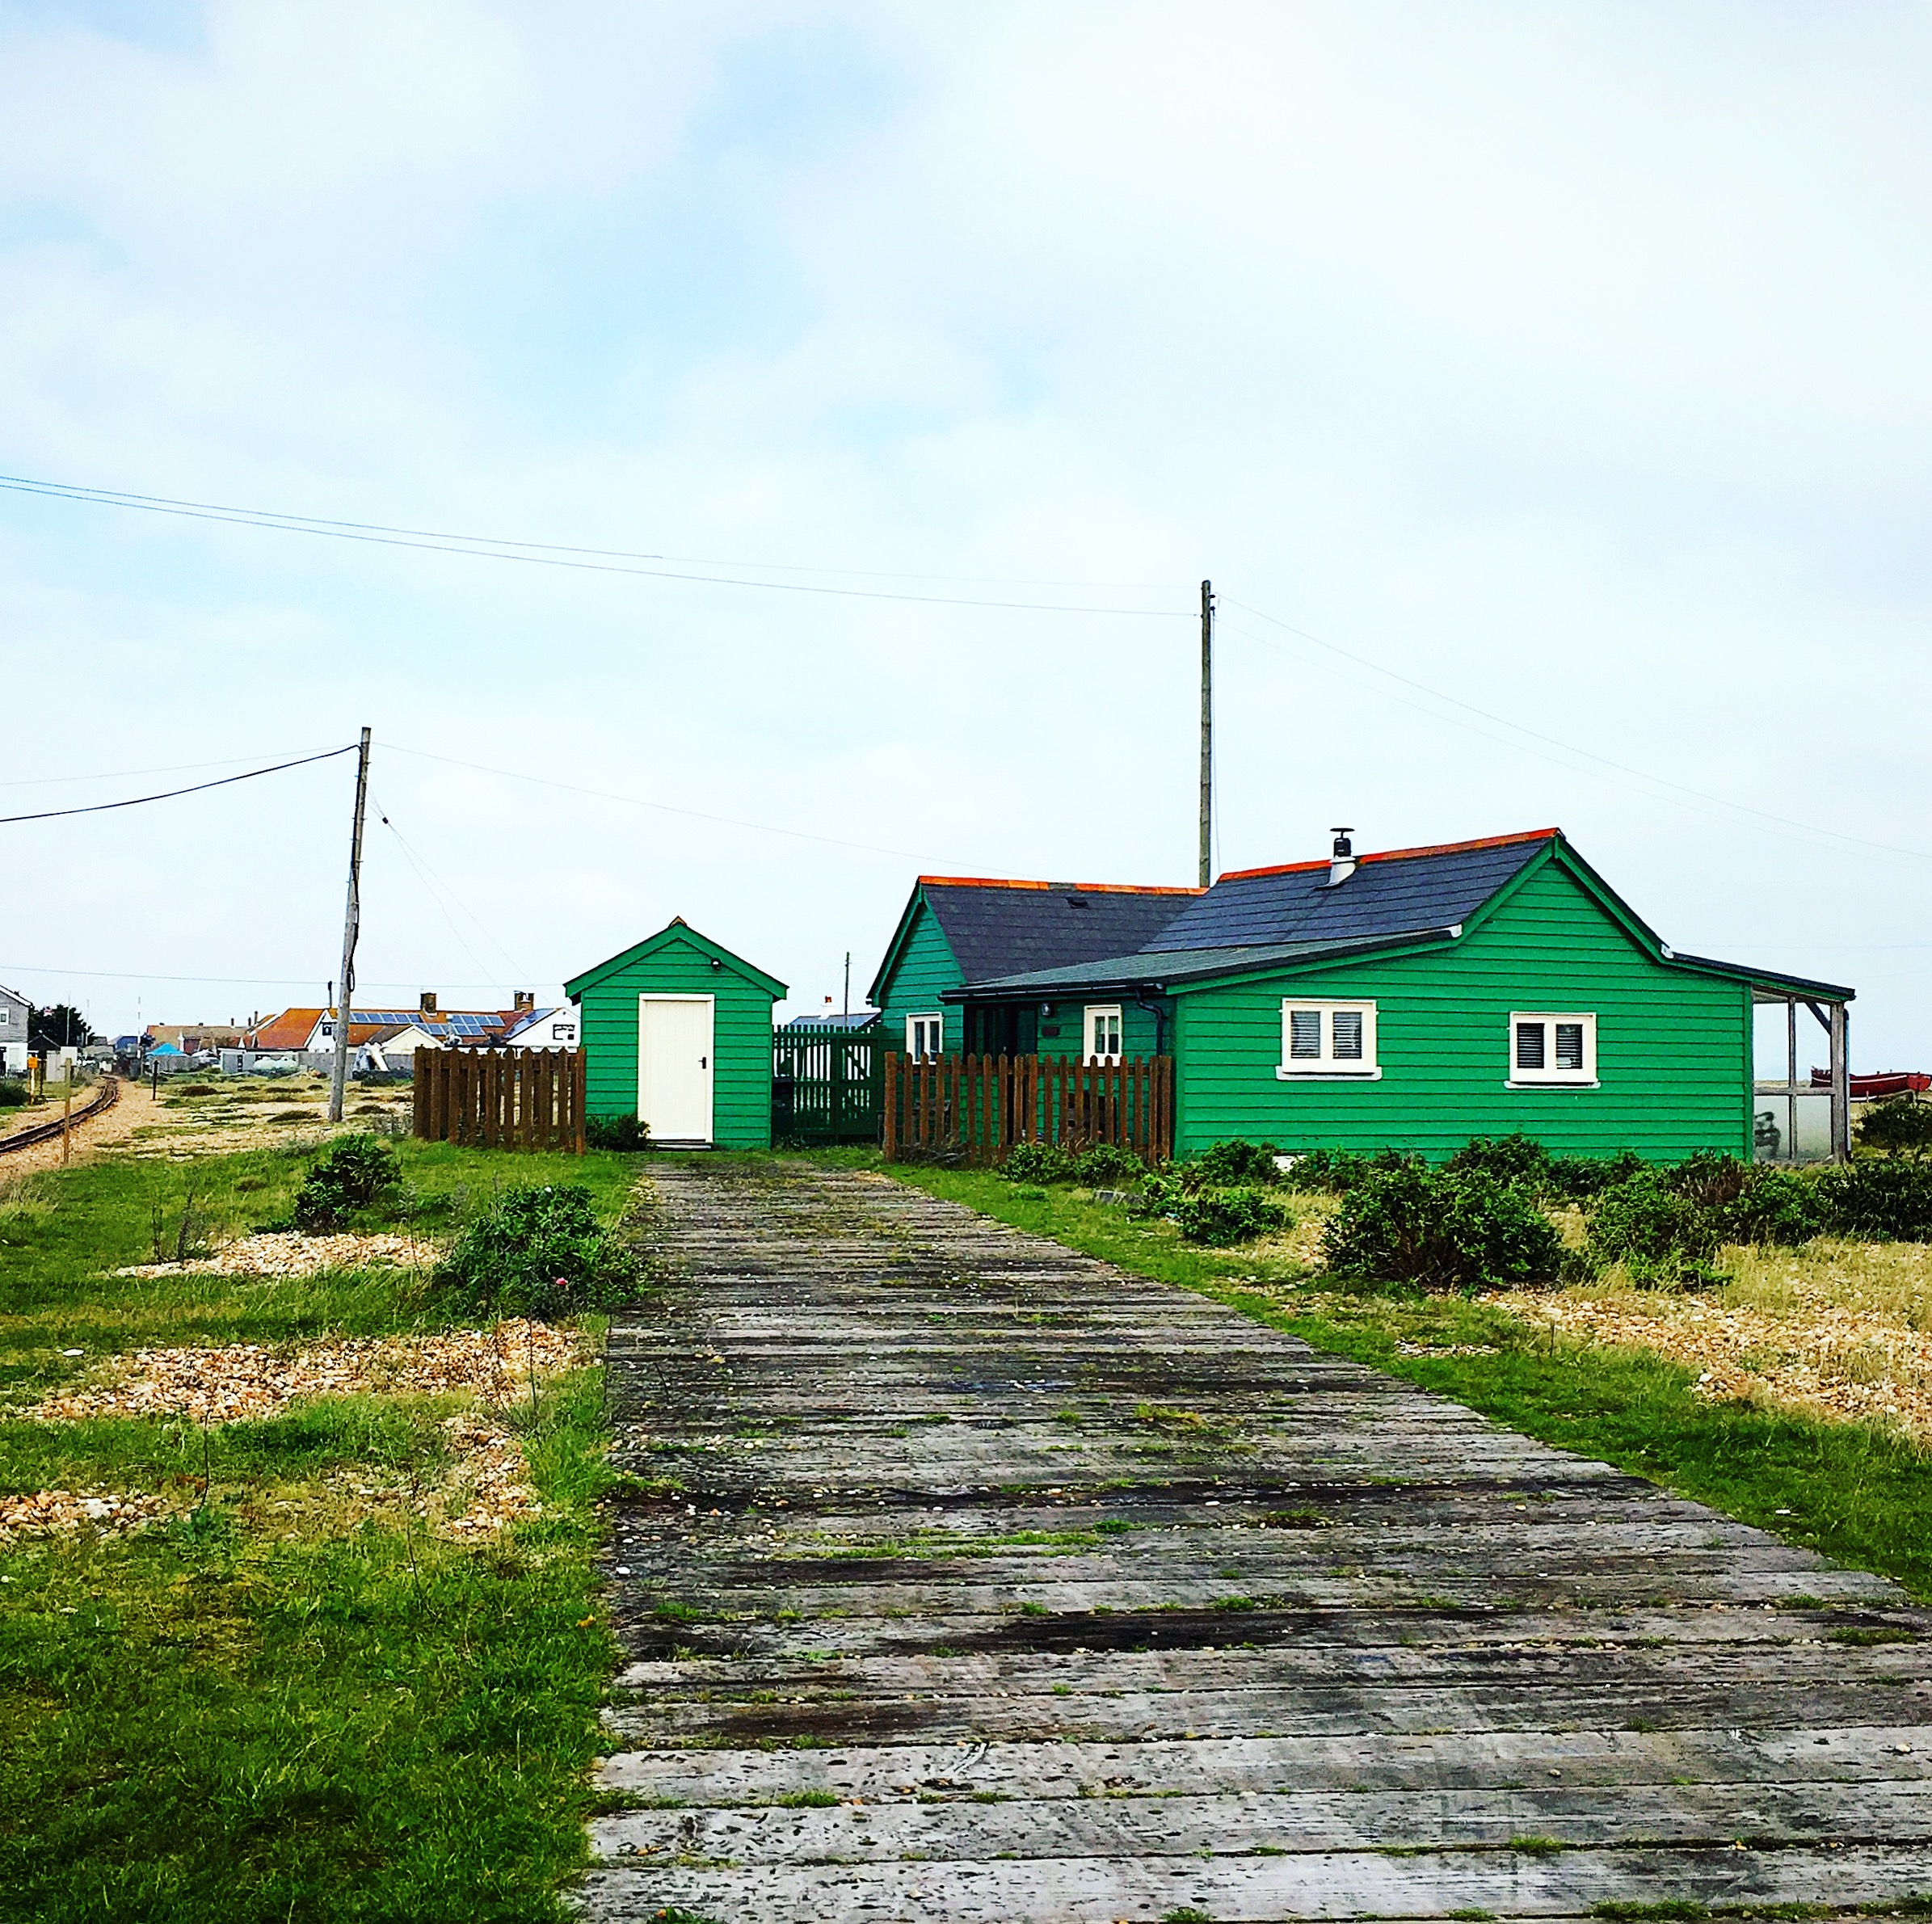 dungeness-travel-blogger-blog-beach-british-theinkcloset-green-chalet.JPG